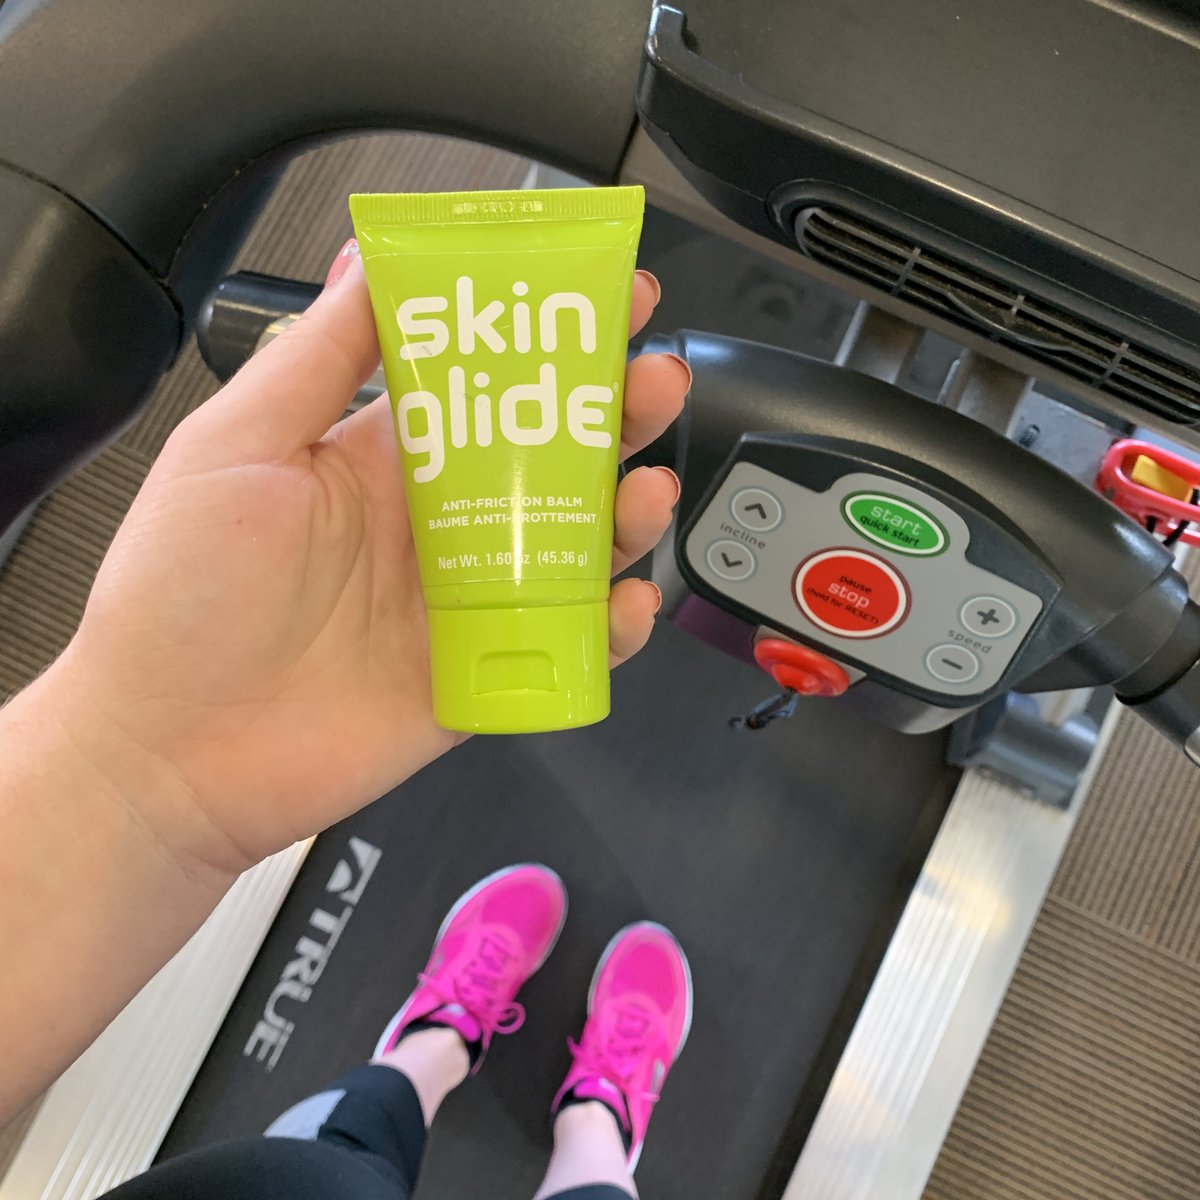 Runners hate chafing between their toes. Skin Glide makes protecting those hard-to-reach areas easy. #BodyEssentials